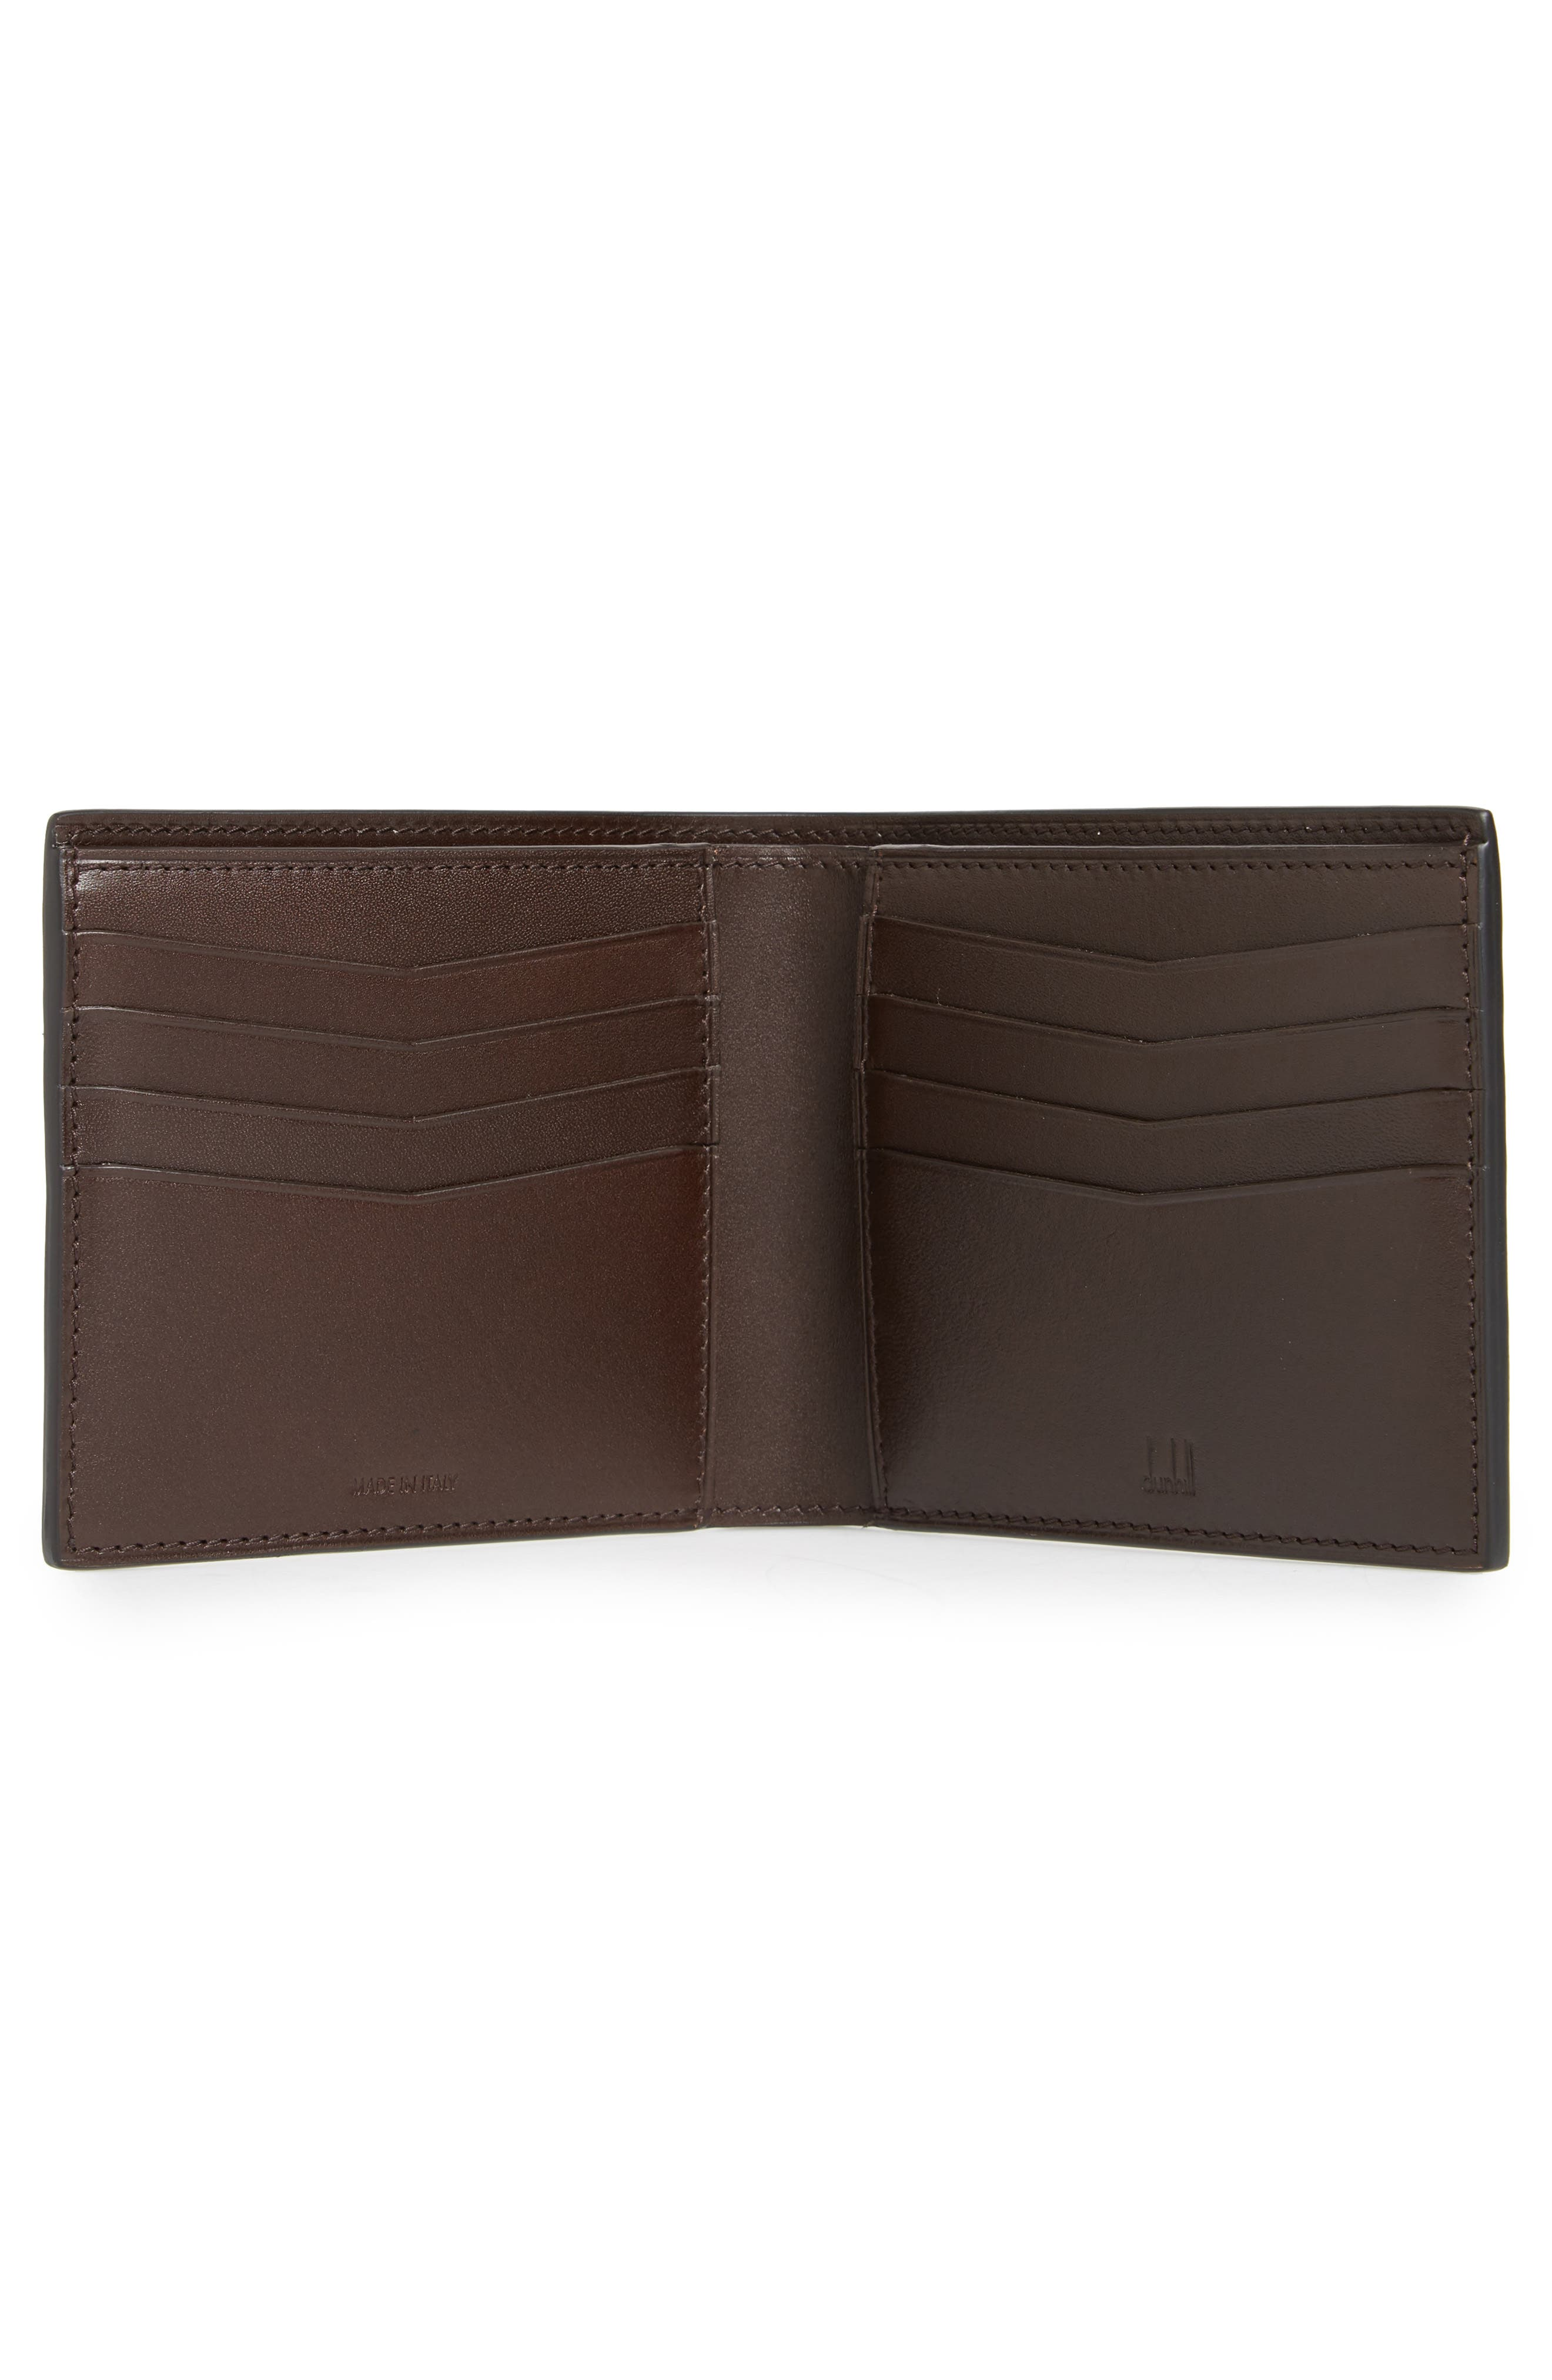 Chassis Leather Wallet,                             Alternate thumbnail 2, color,                             Black